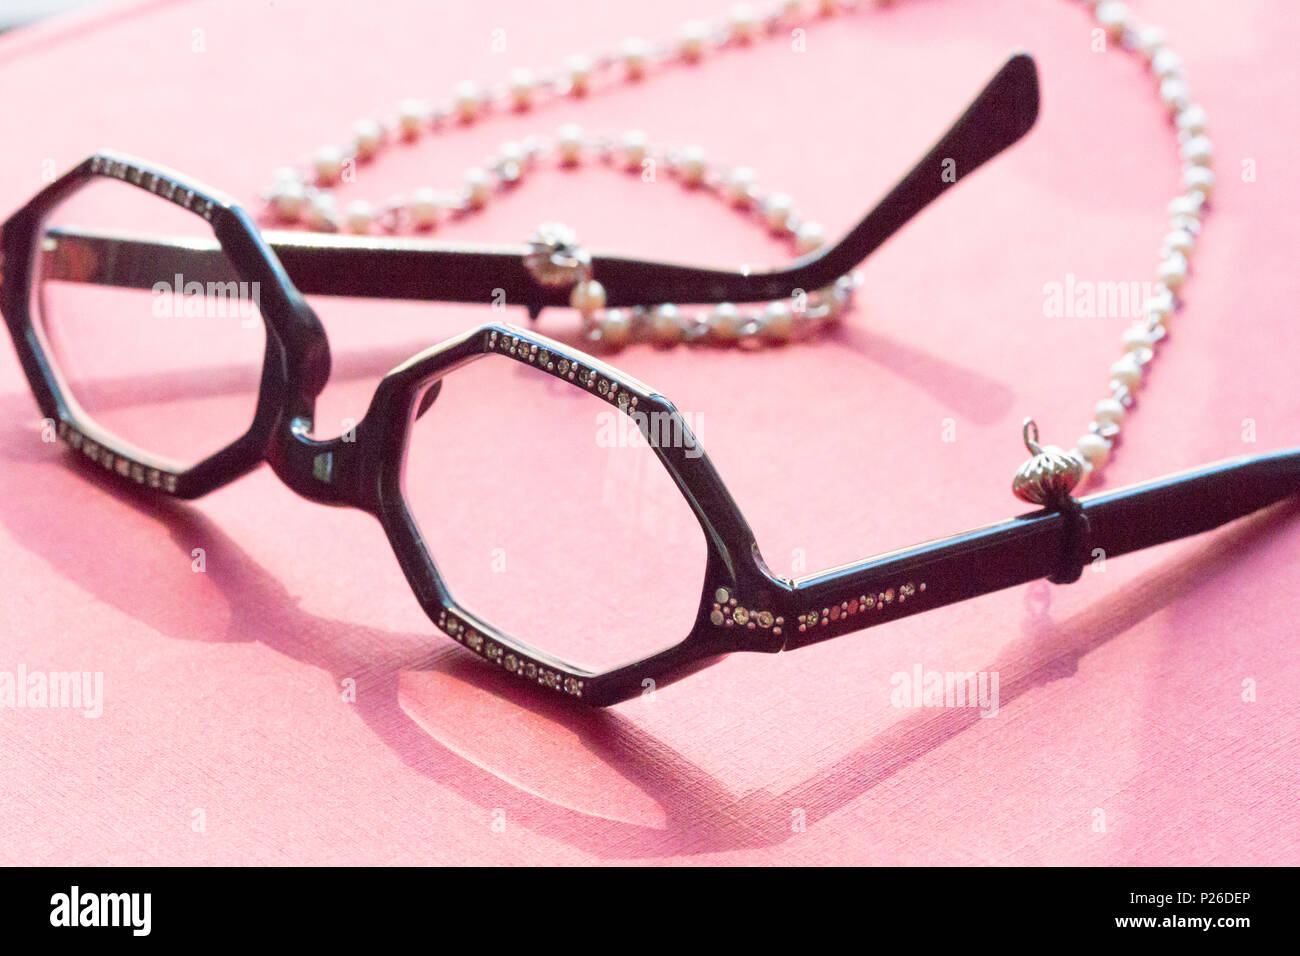 Vintage Eyeglasses on Librarian's Chain, NYC - Stock Image